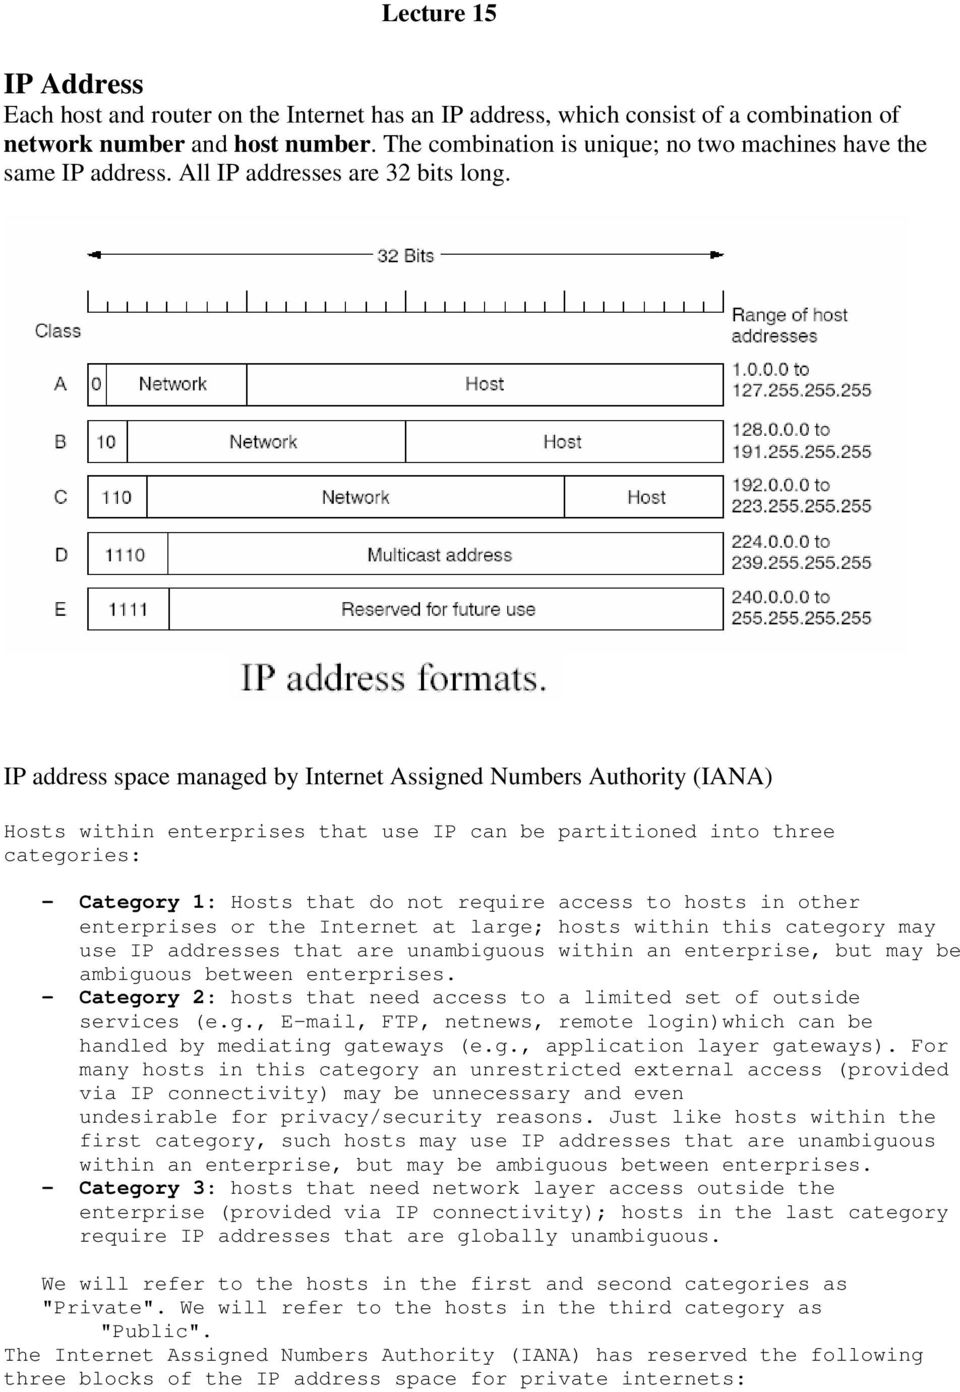 IP address space managed by Internet Assigned Numbers Authority (IANA) Hosts within enterprises that use IP can be partitioned into three categories: - Category 1: Hosts that do not require access to